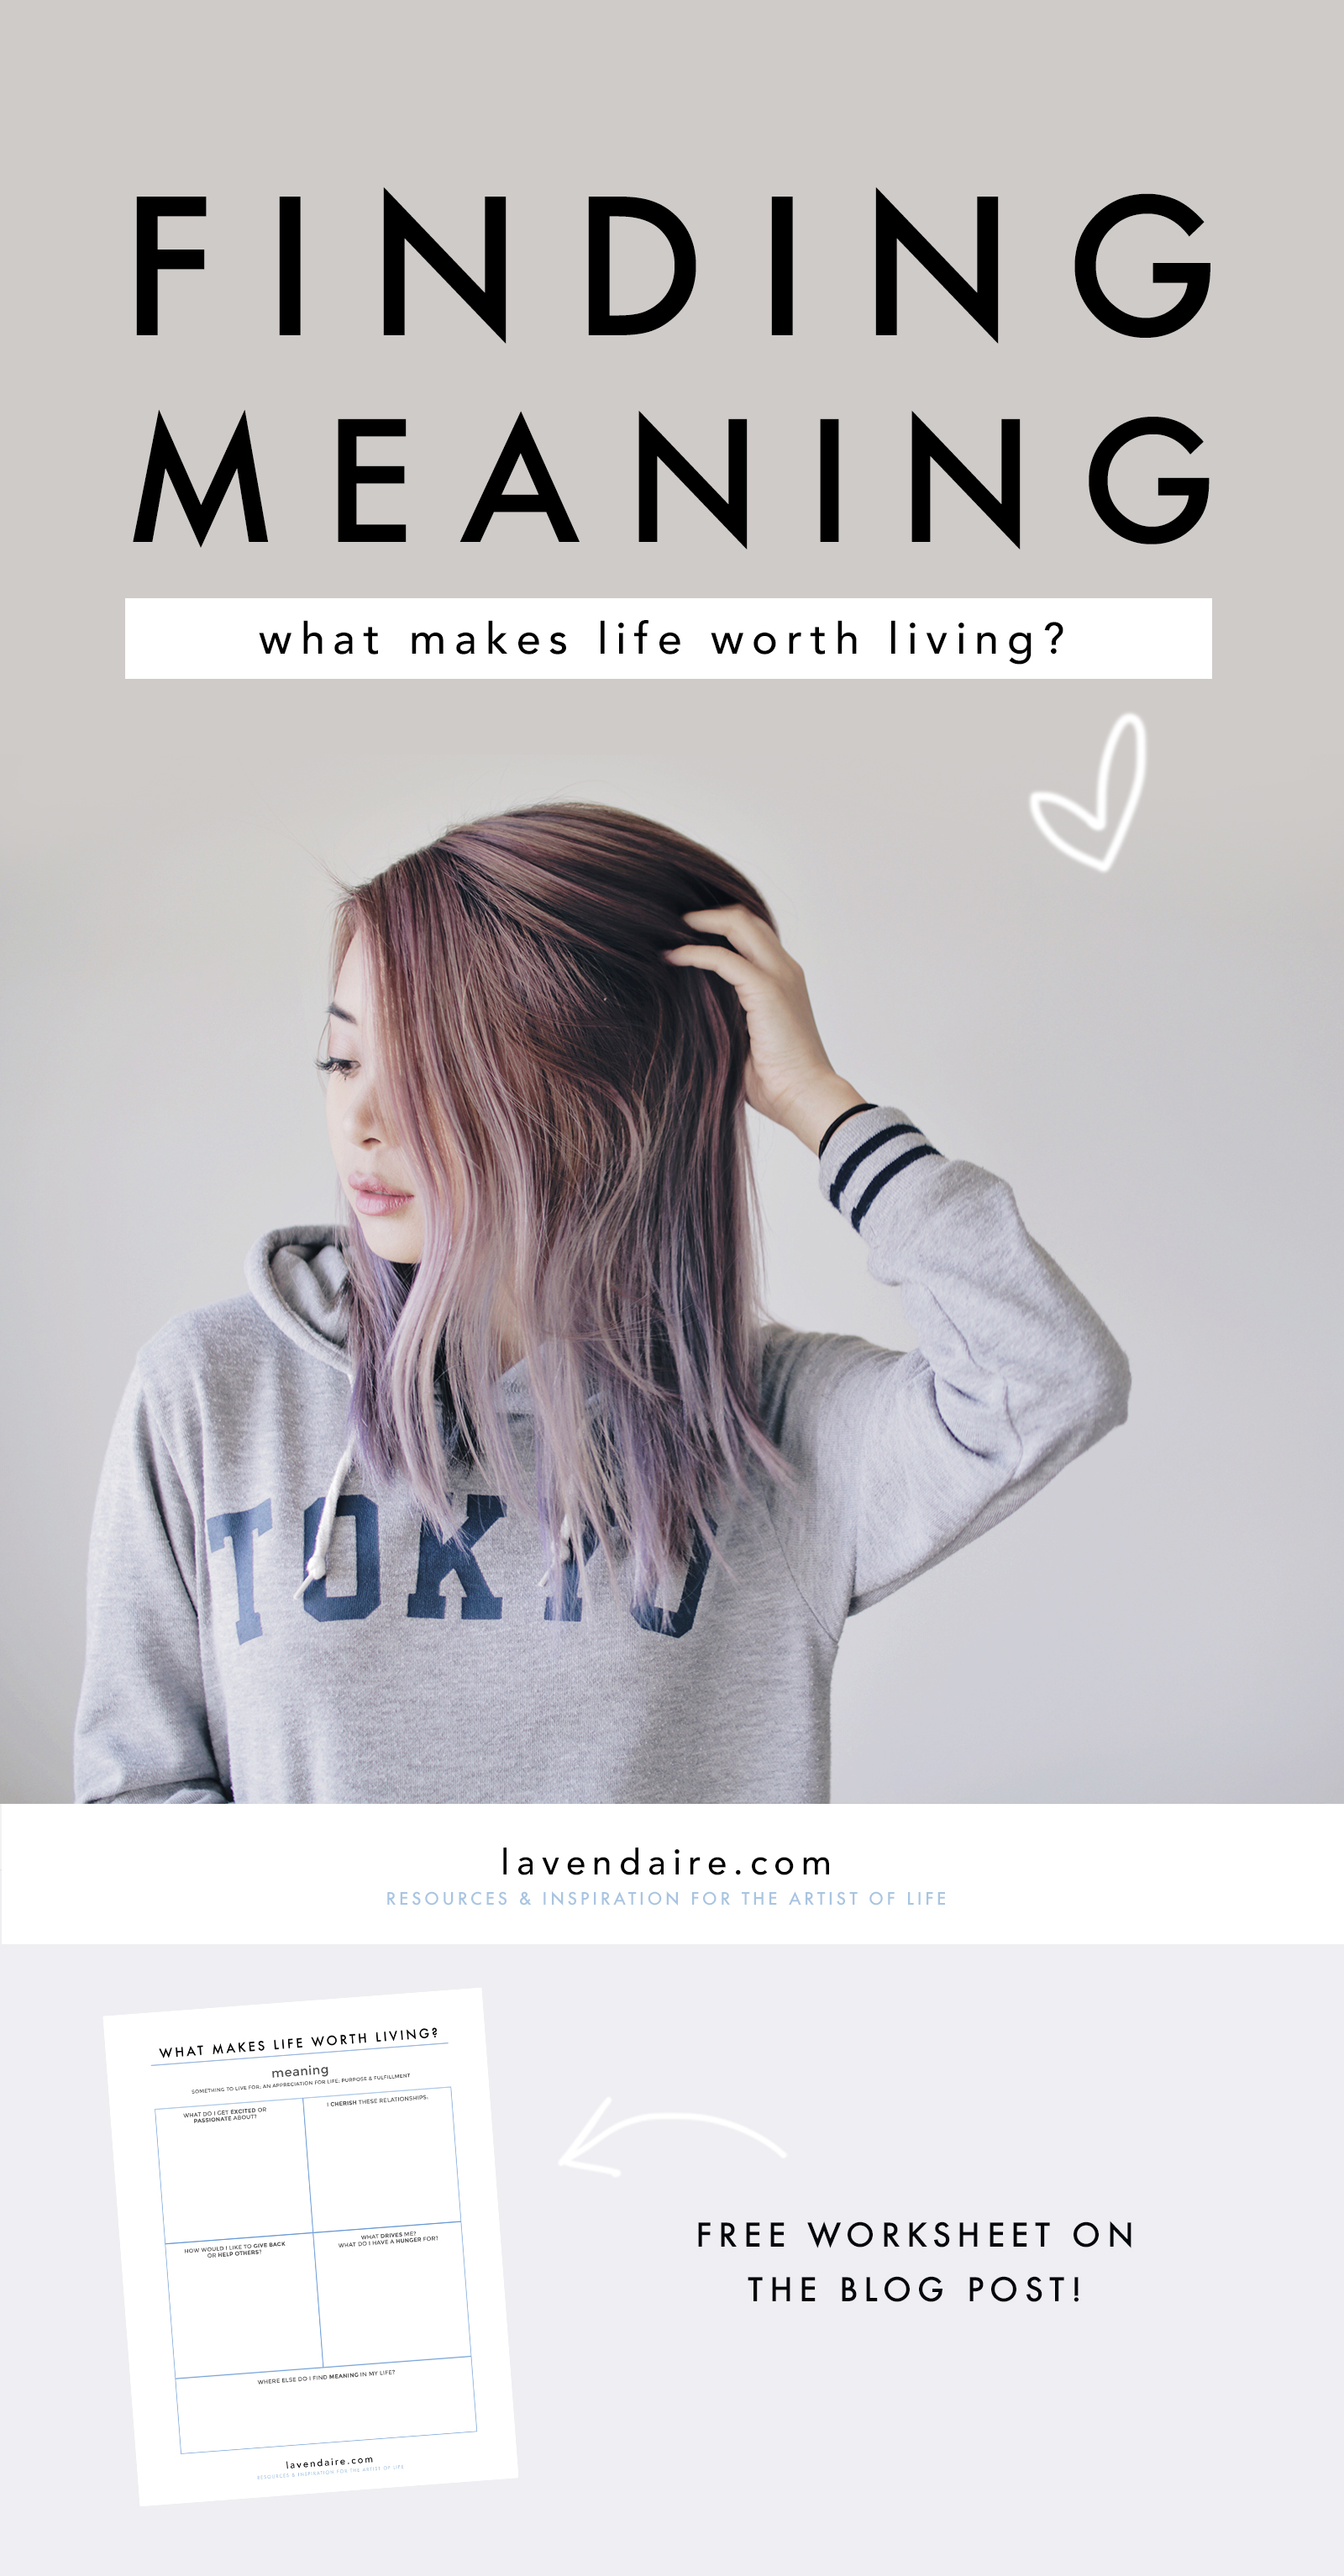 Free worksheet on finding meaning in life | lavendaire lifestyle design & personal growth